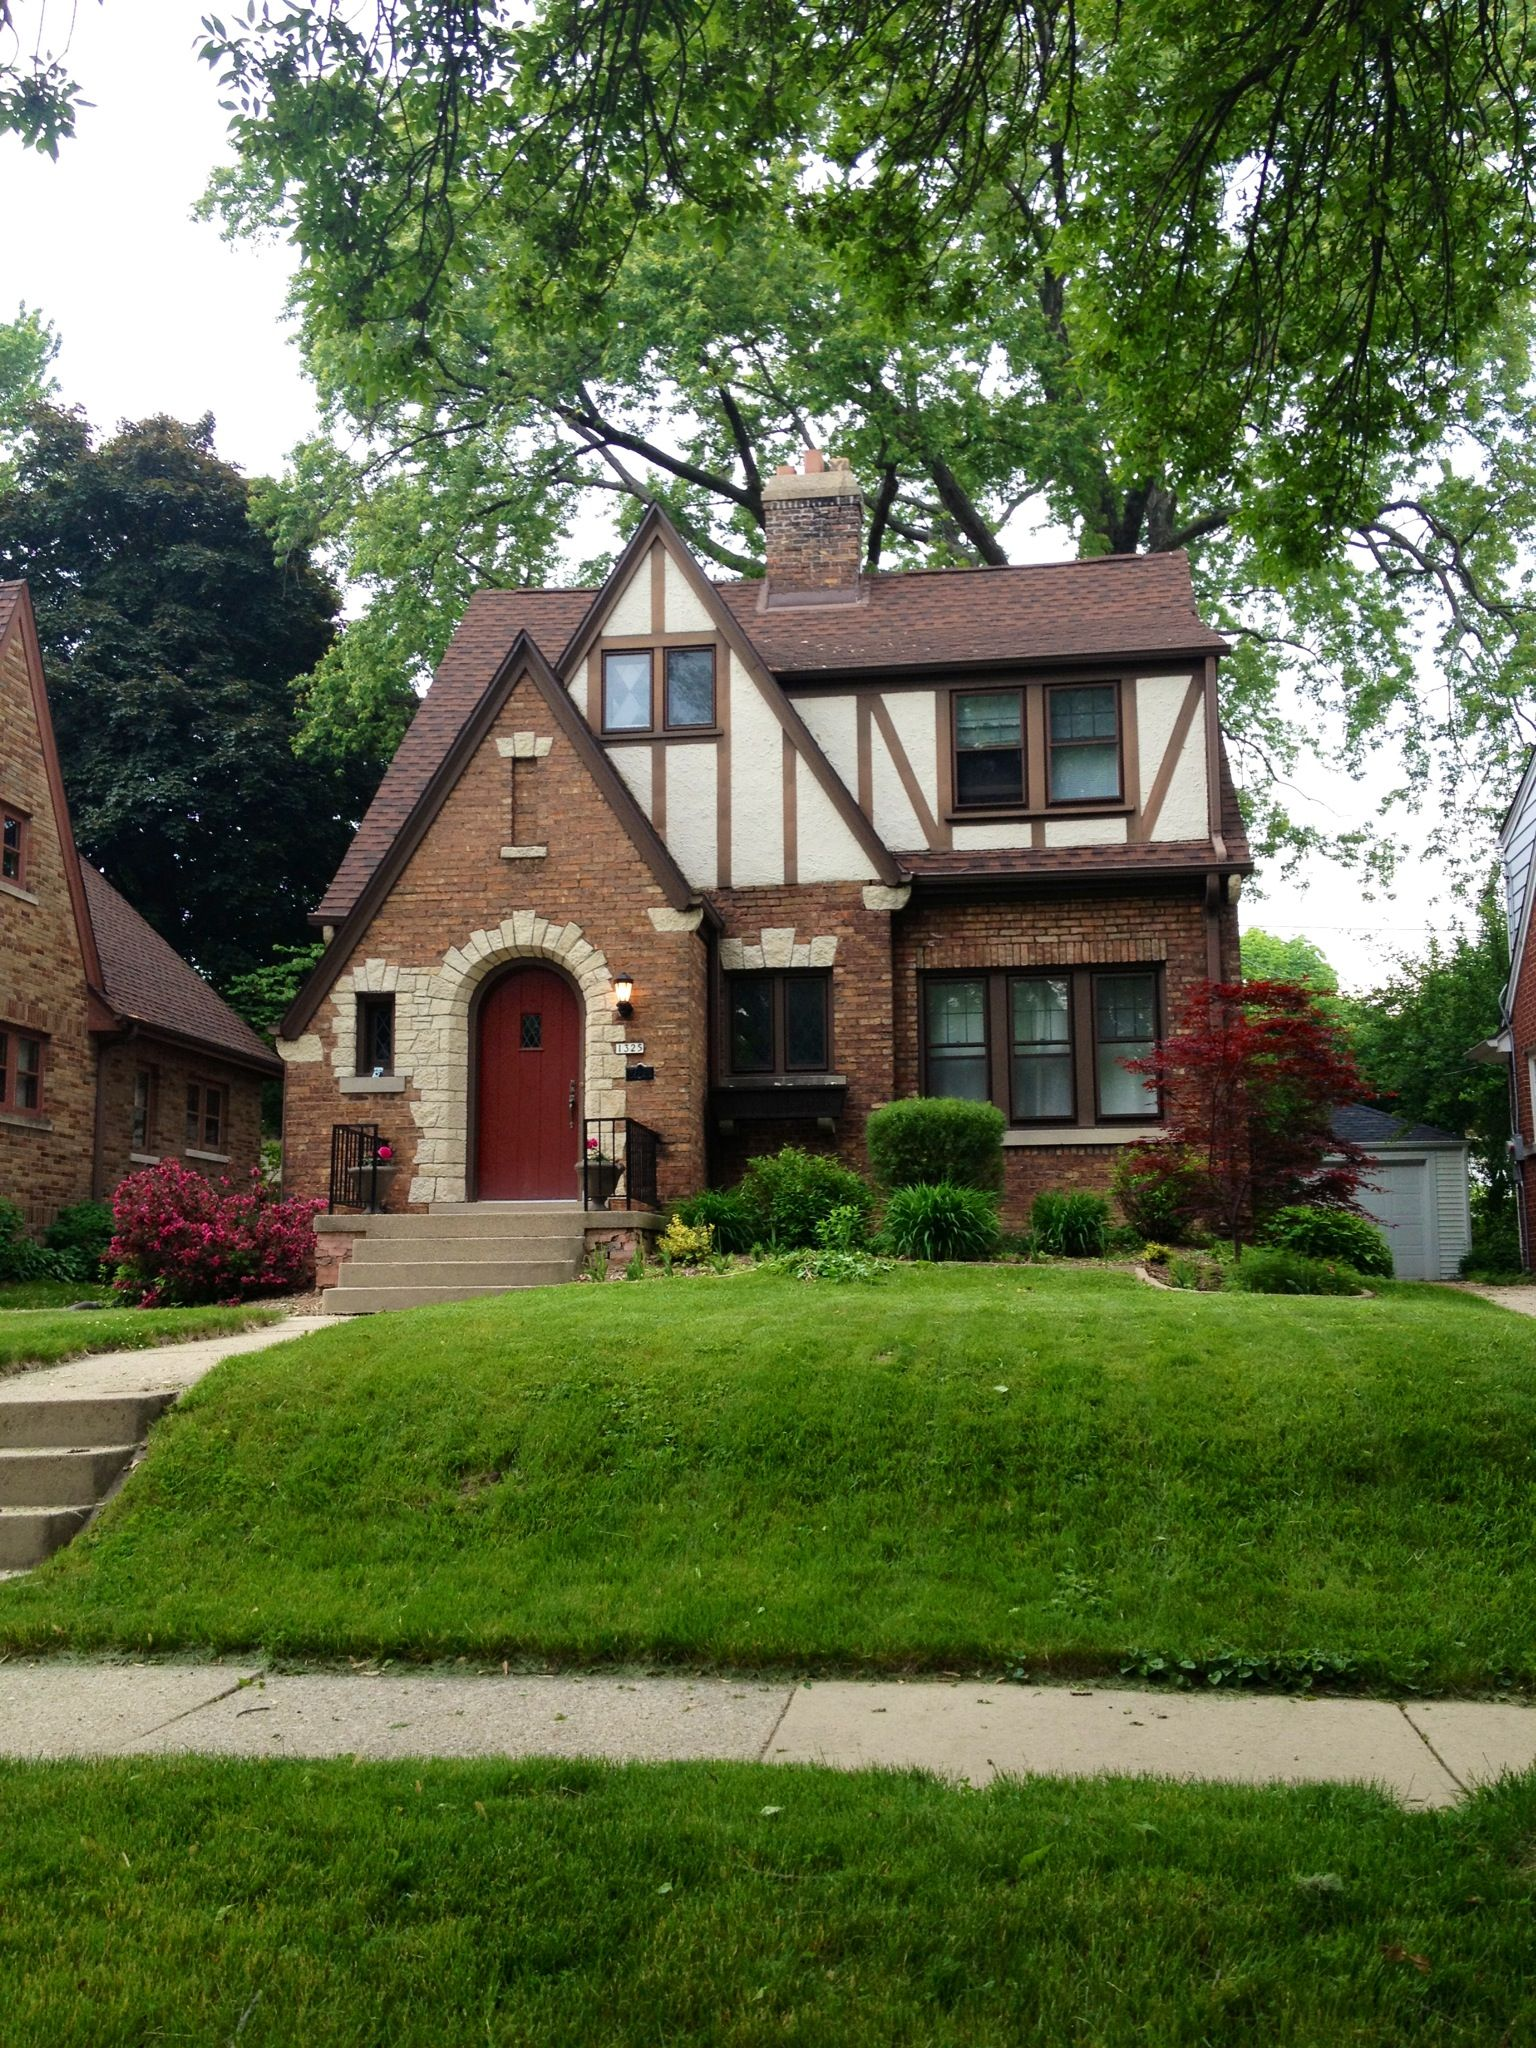 adorable tudor style home - reminds